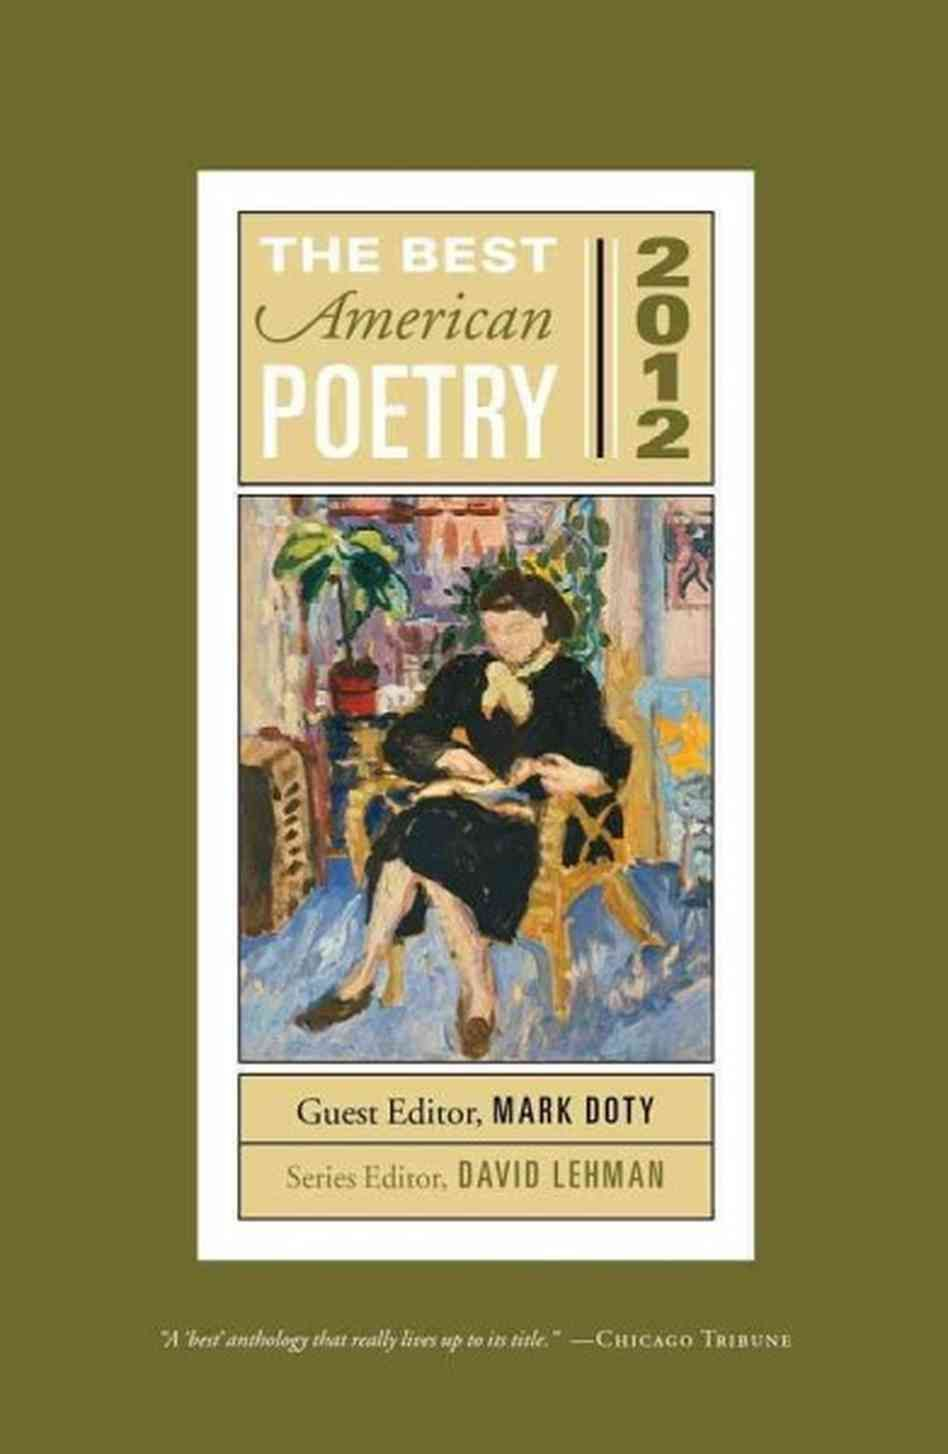 The Best American Poetry 2012. David Lehman and Mark Doty. Simon & Schuster, 2012. Over the last twenty-five years, The Best American Poetry has become an annual rite of the poetry world, and this year's anthology is a welcome and essential addition to the series. Painting used on cover: Jane Freilicher on 21st Street (1953). Nell Blaine. Oil on paper.